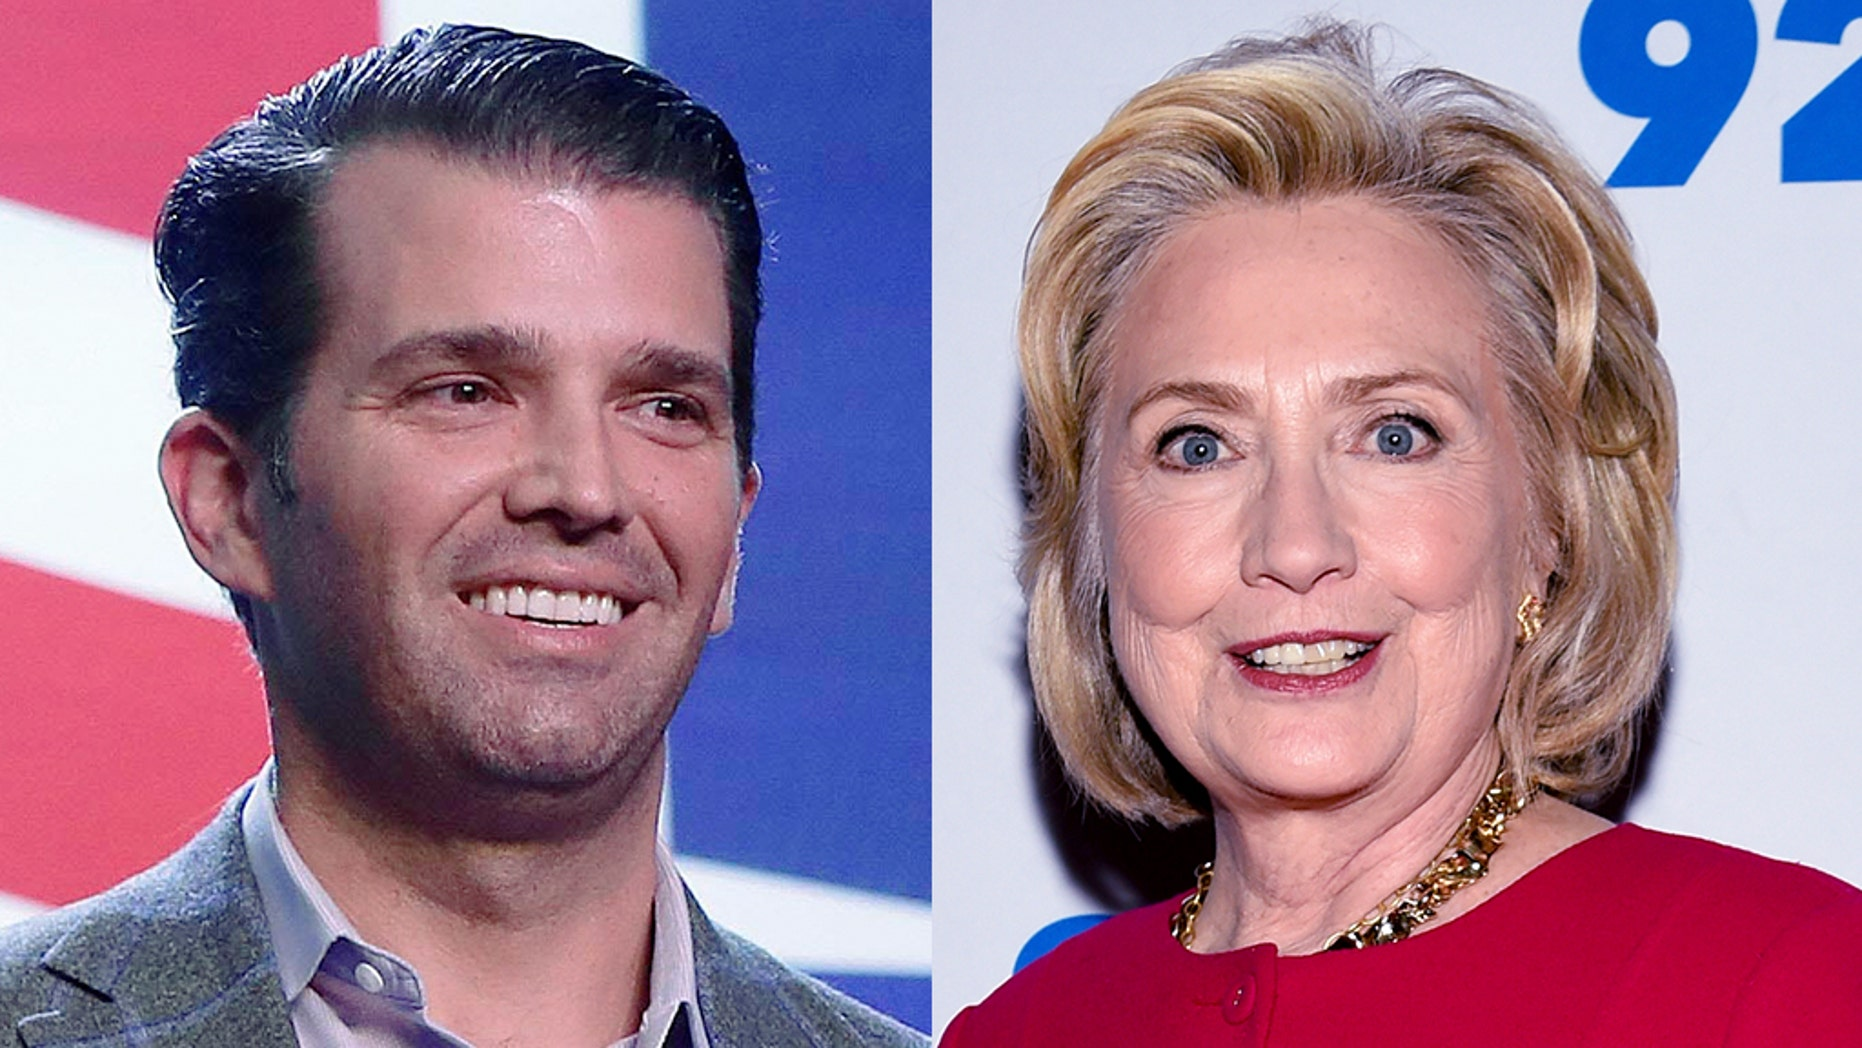 Donald Trump Jr. and former Secretary of State Hillary Clinton